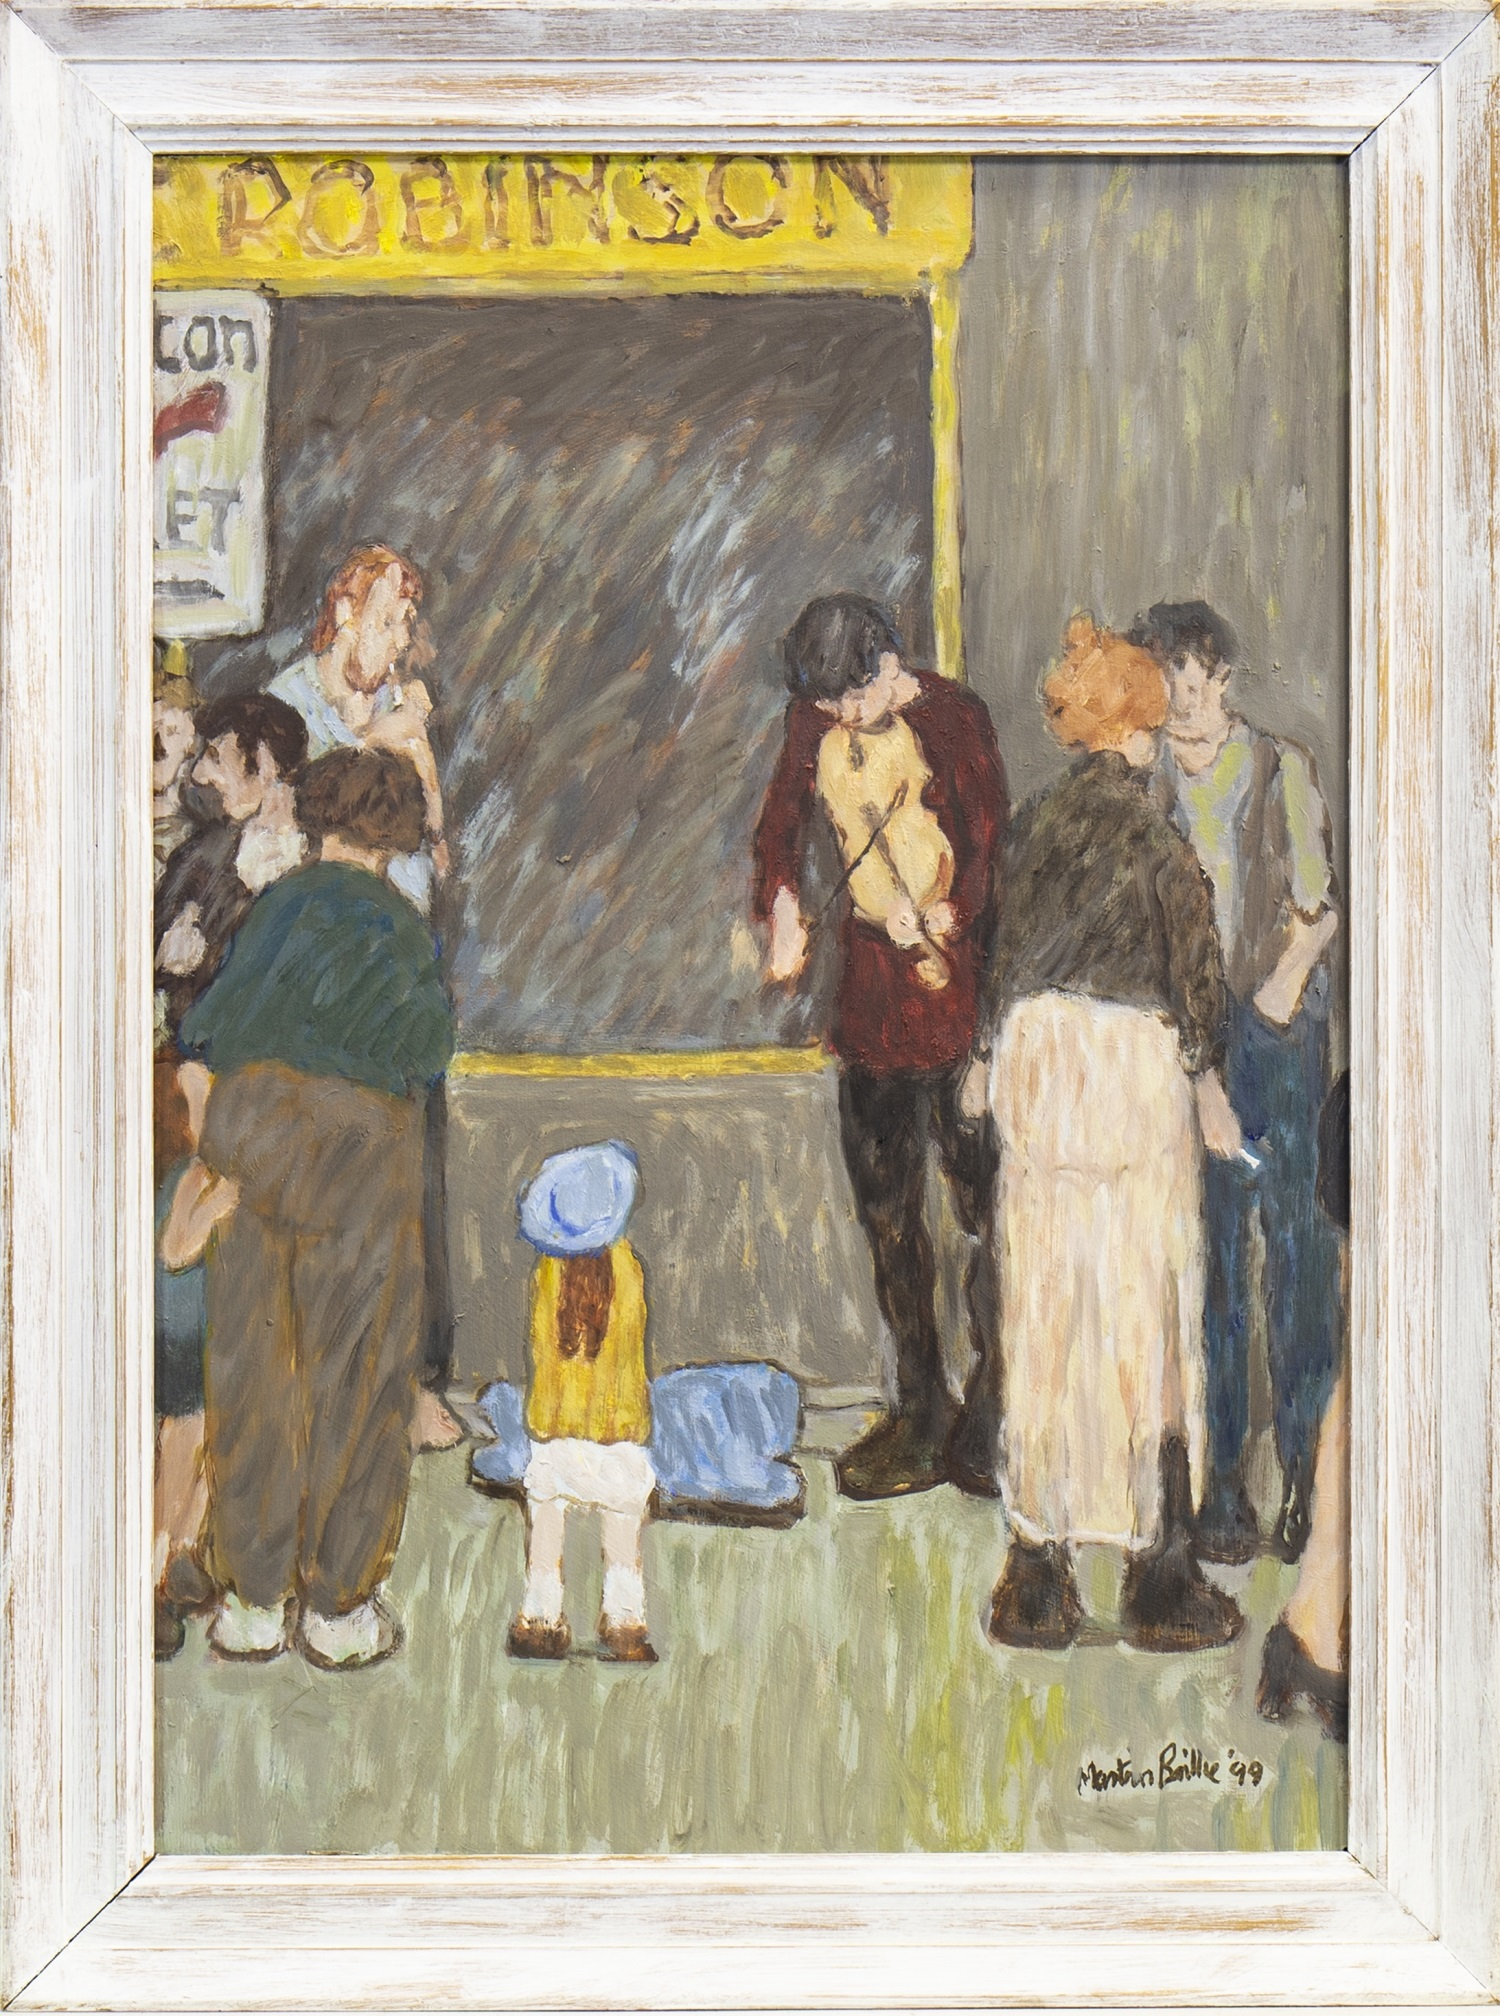 Lot 689 - STREET SCENE WITH BUSKER, AN OIL BY MARTIN BAILLIE